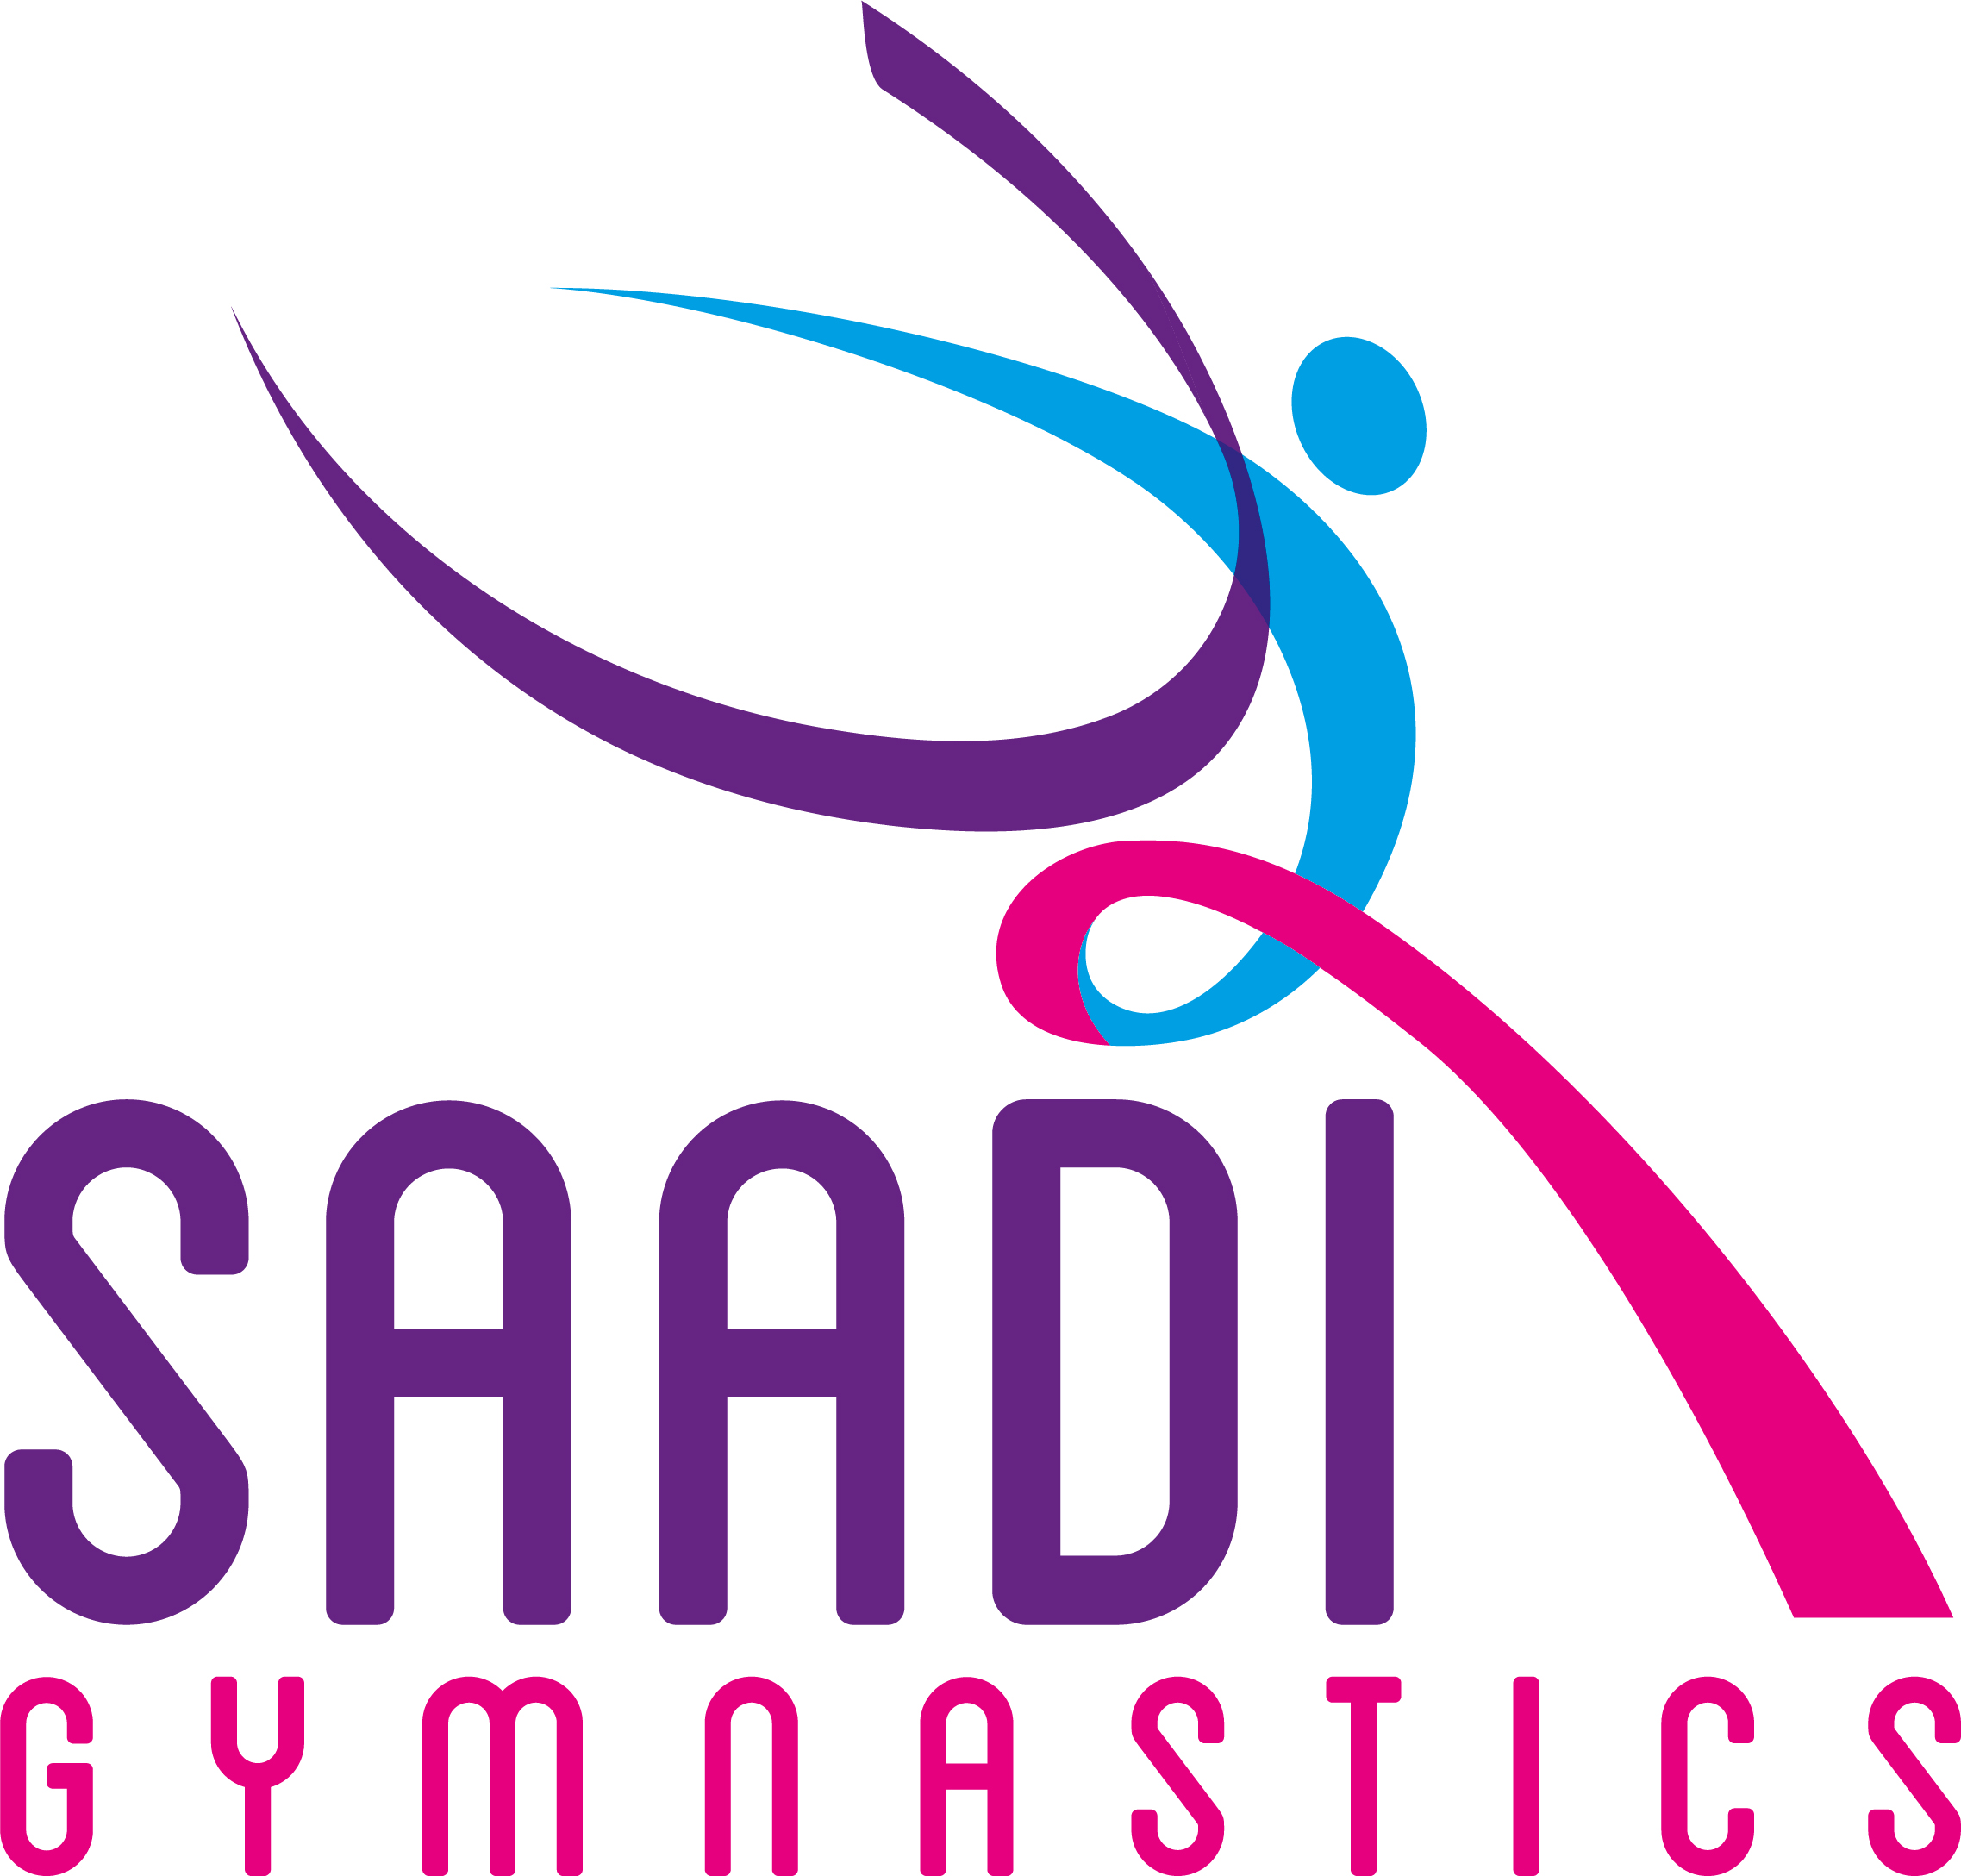 SAADI Gymnastics Ltd